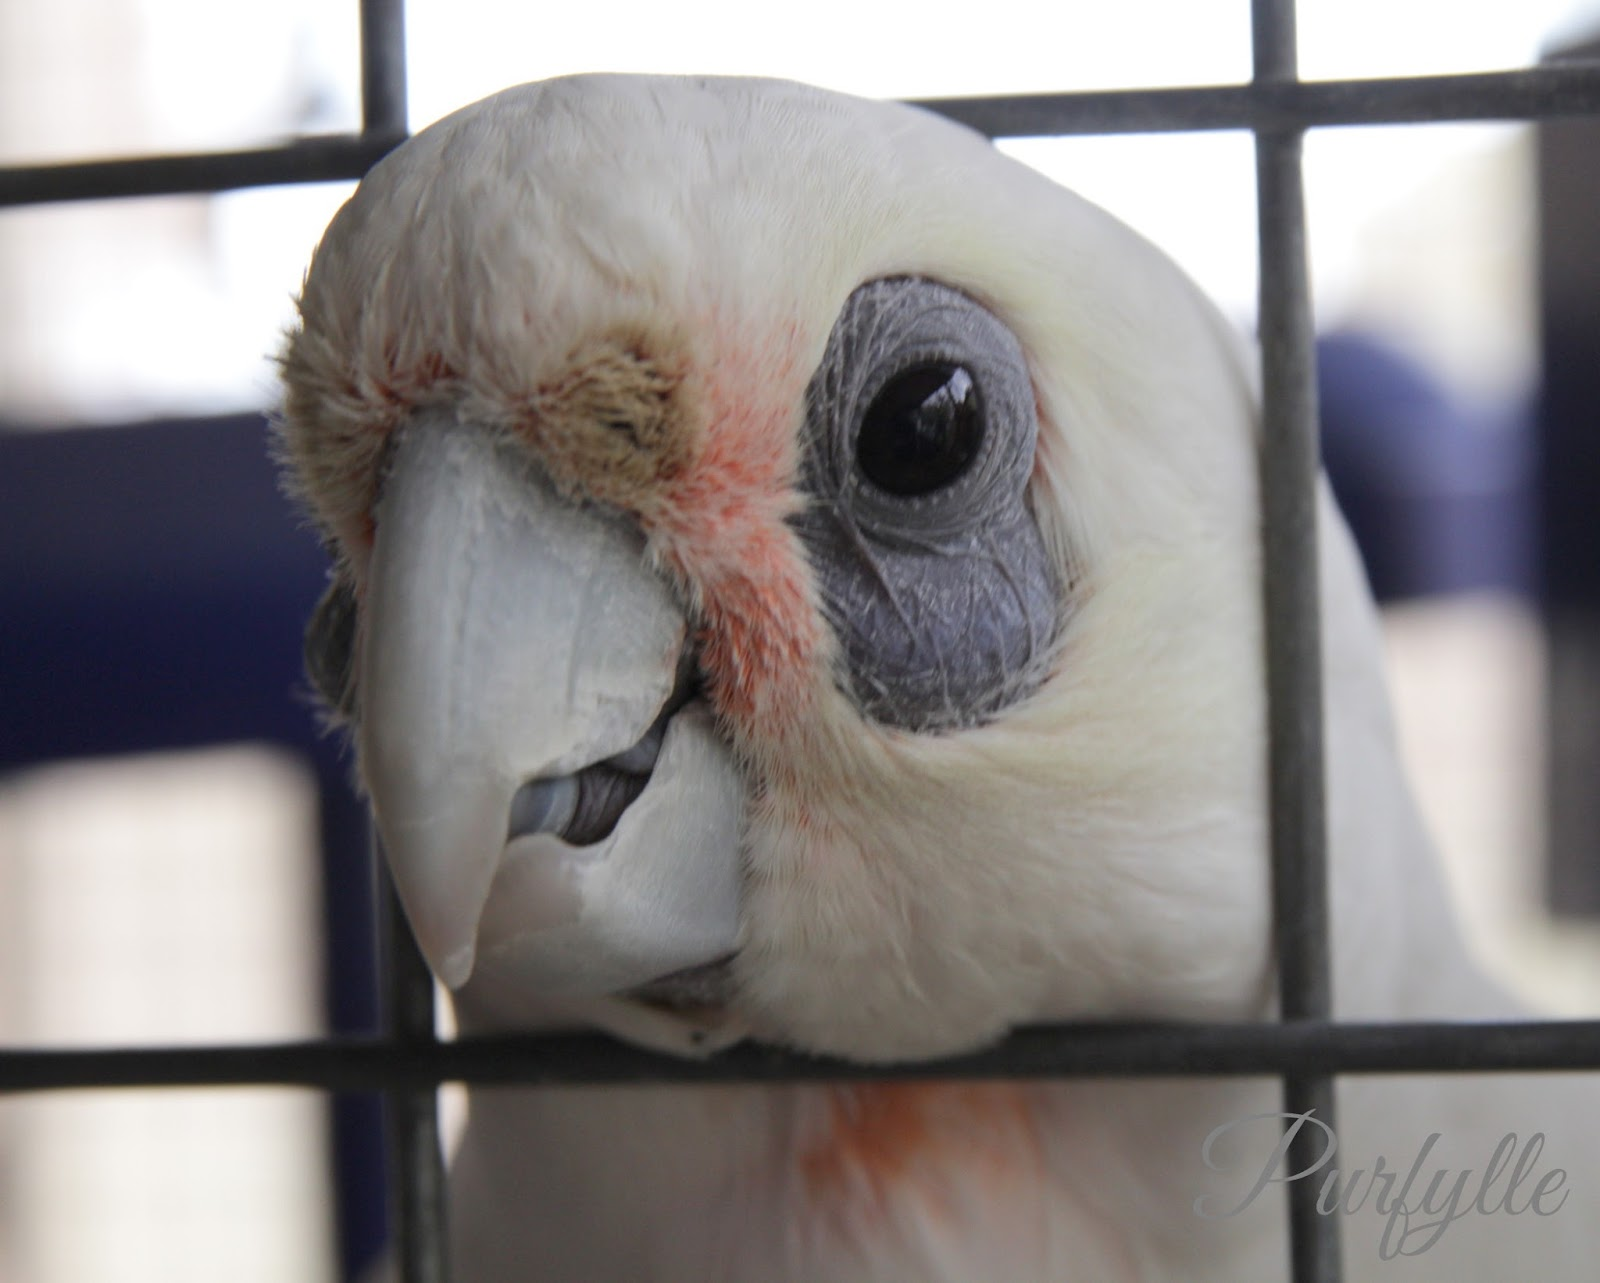 Noisy the corella